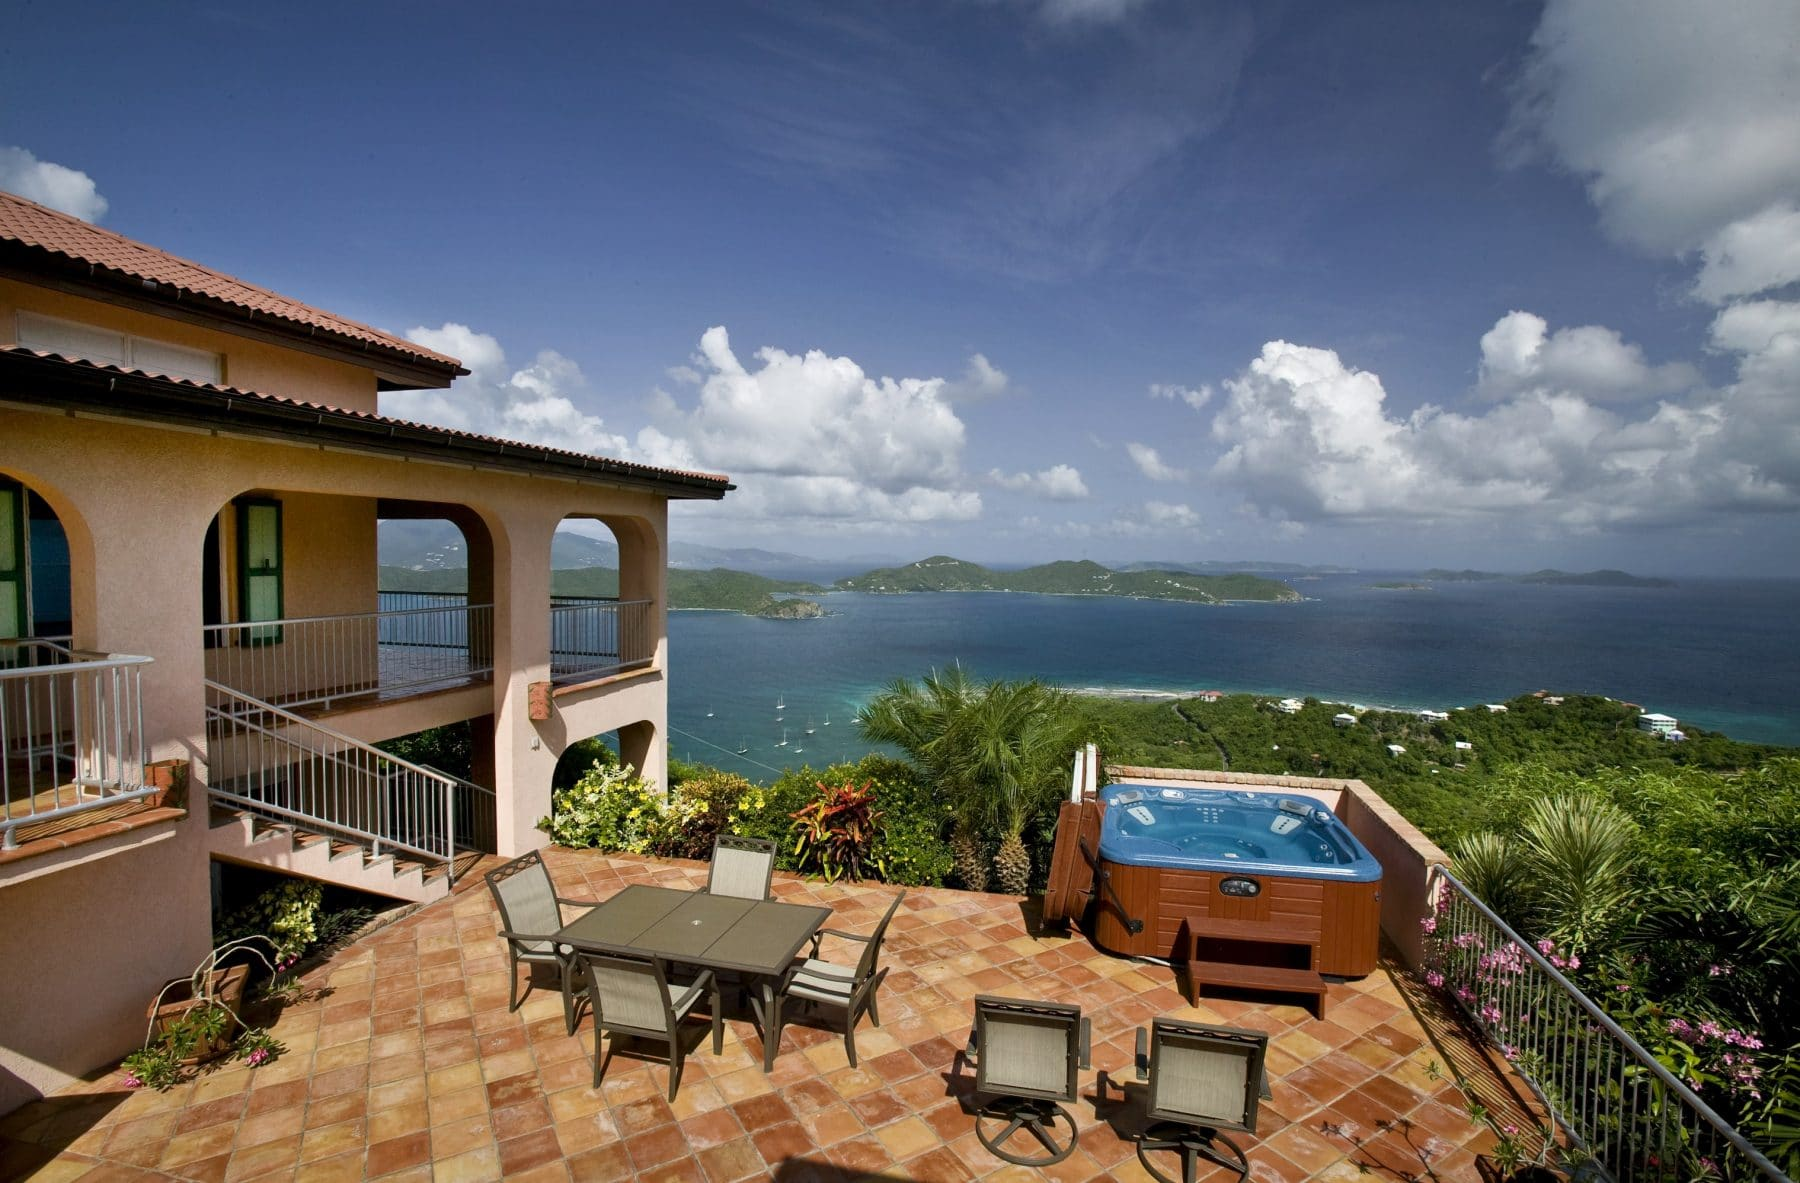 virgin islands rentals VillaVentosa Exterior